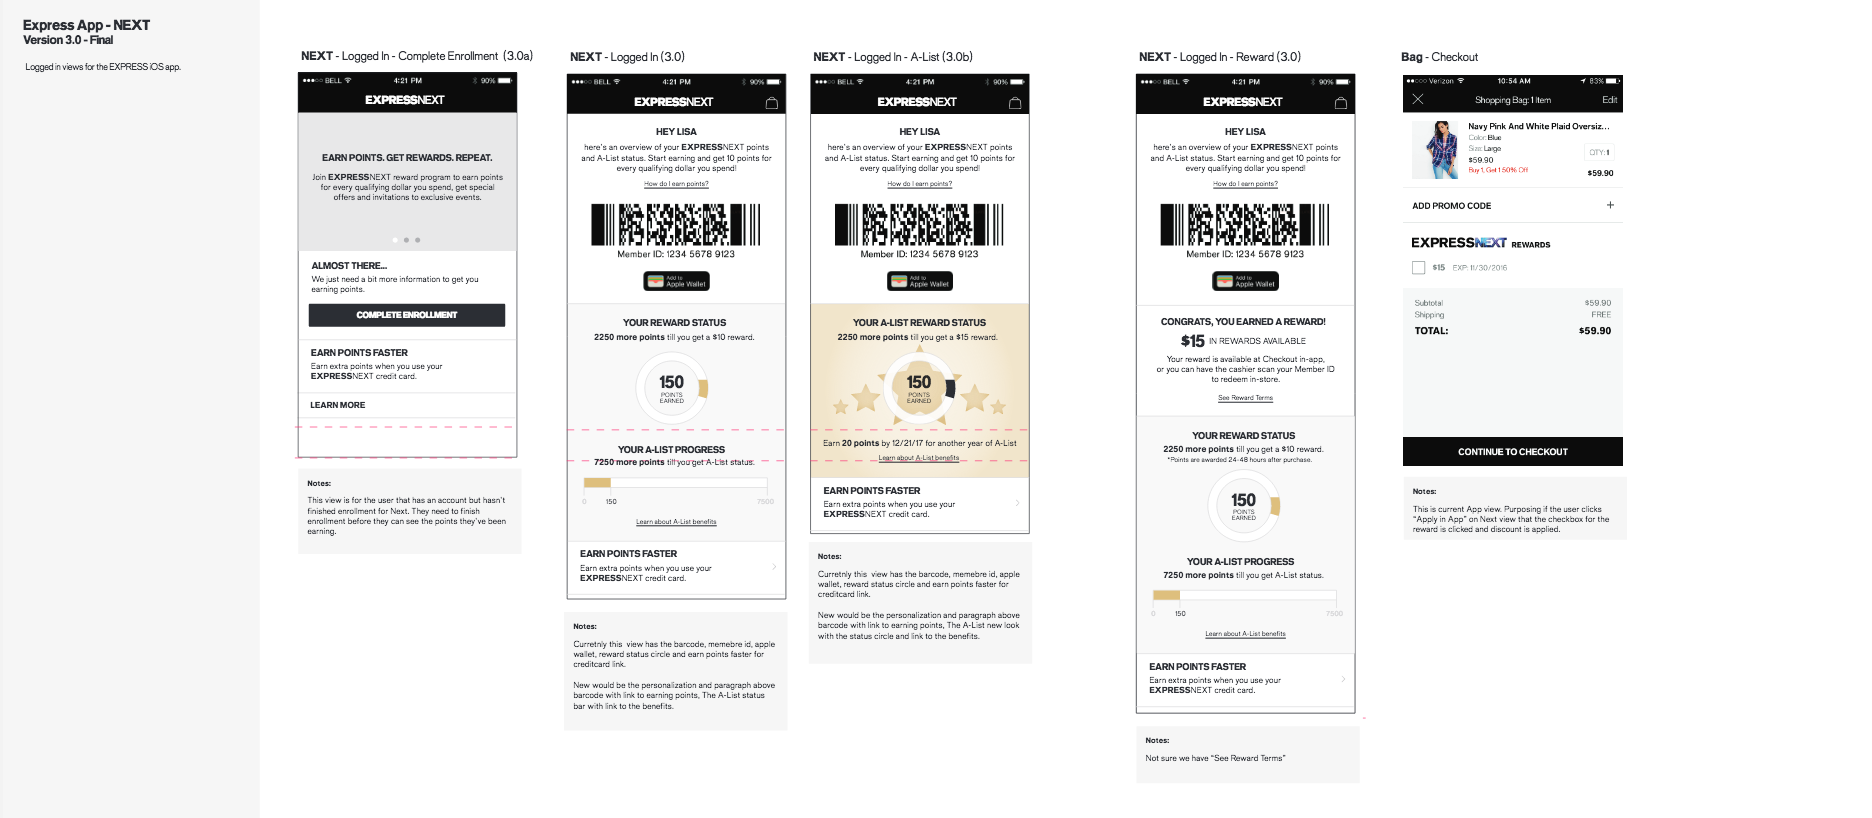 Express Next Loyalty Experience Wires